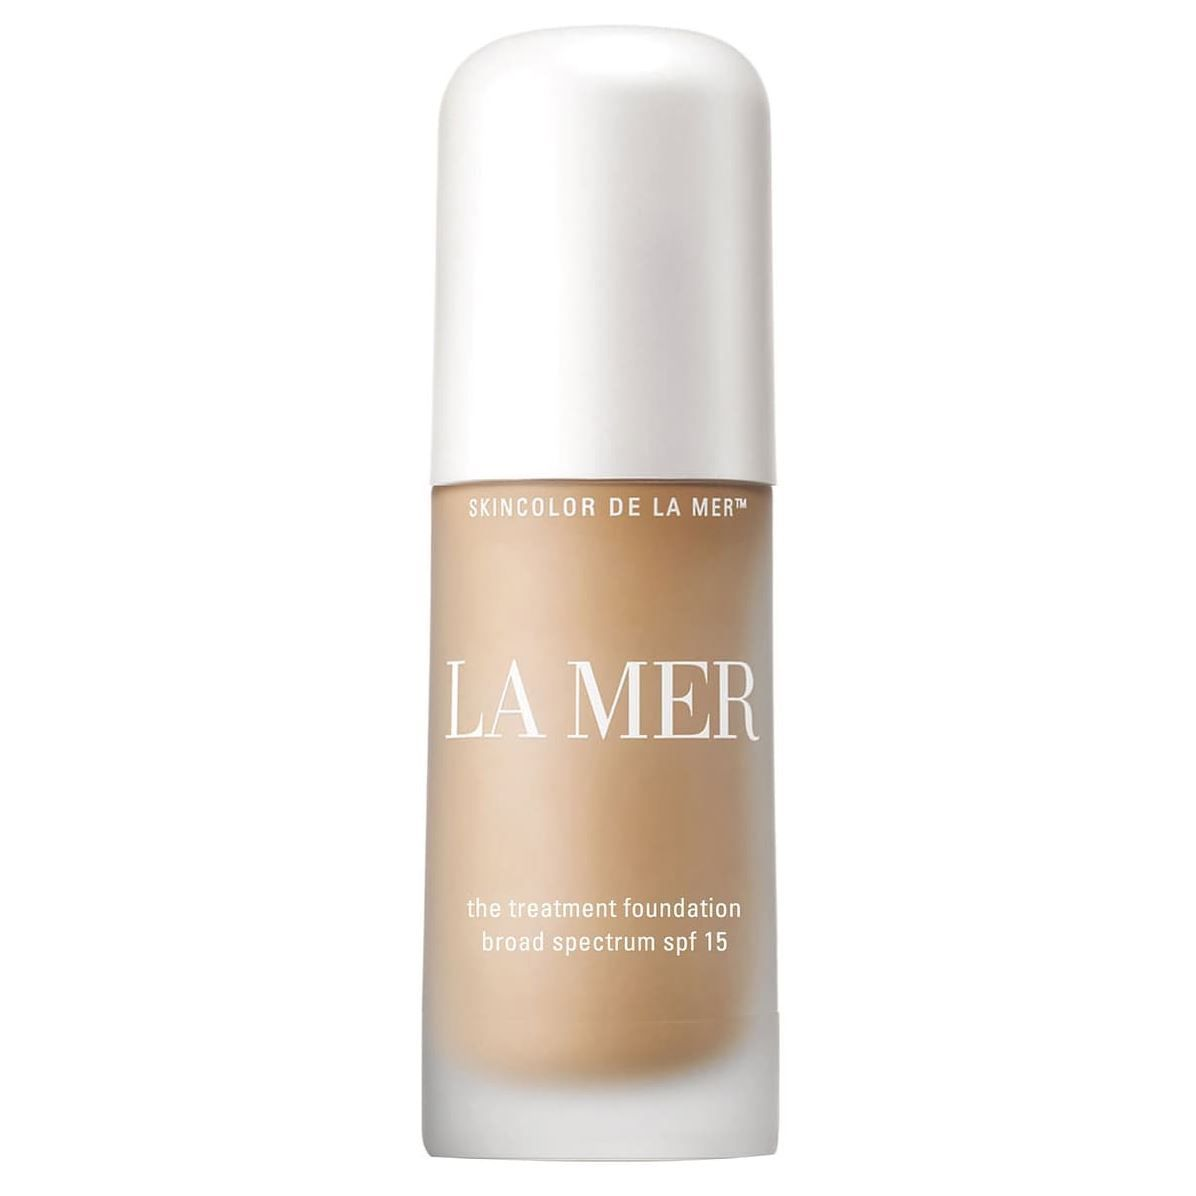 Skincolor De La Mer The Treatment Fluid Foundation SPF 15